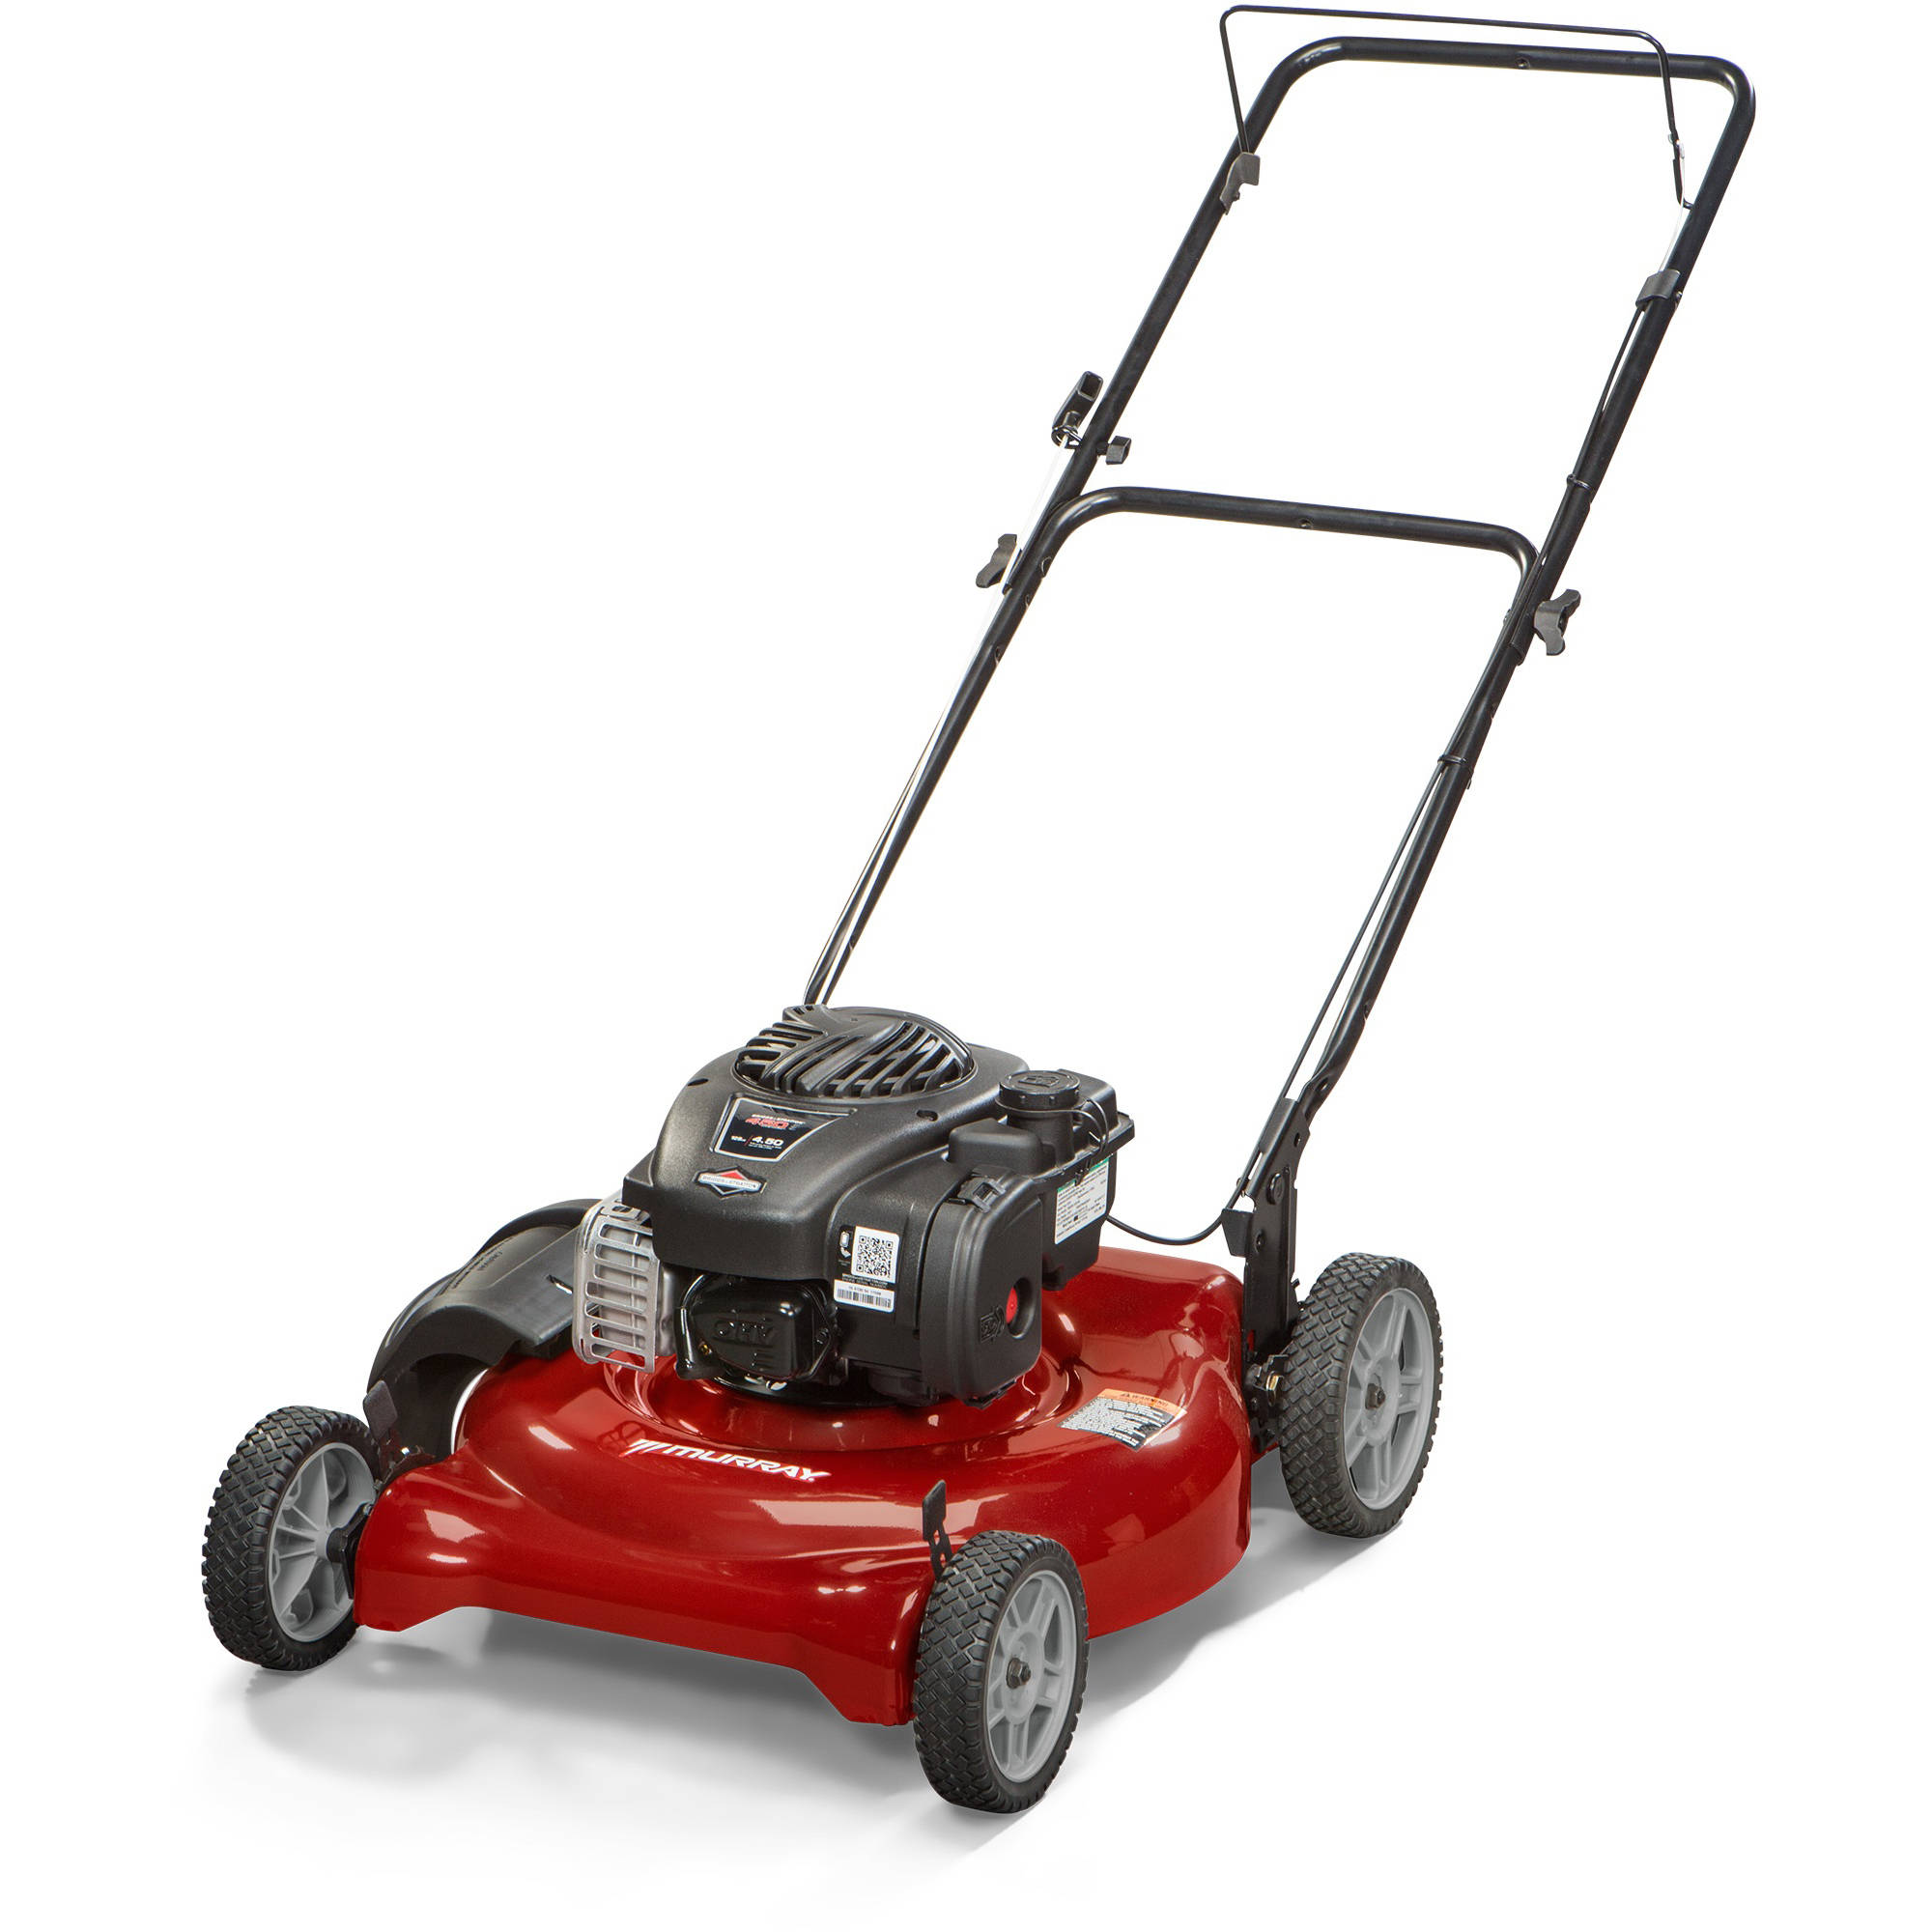 10 Best Lawn Mowers 2016 Top Rated Lawn Mower Reviews